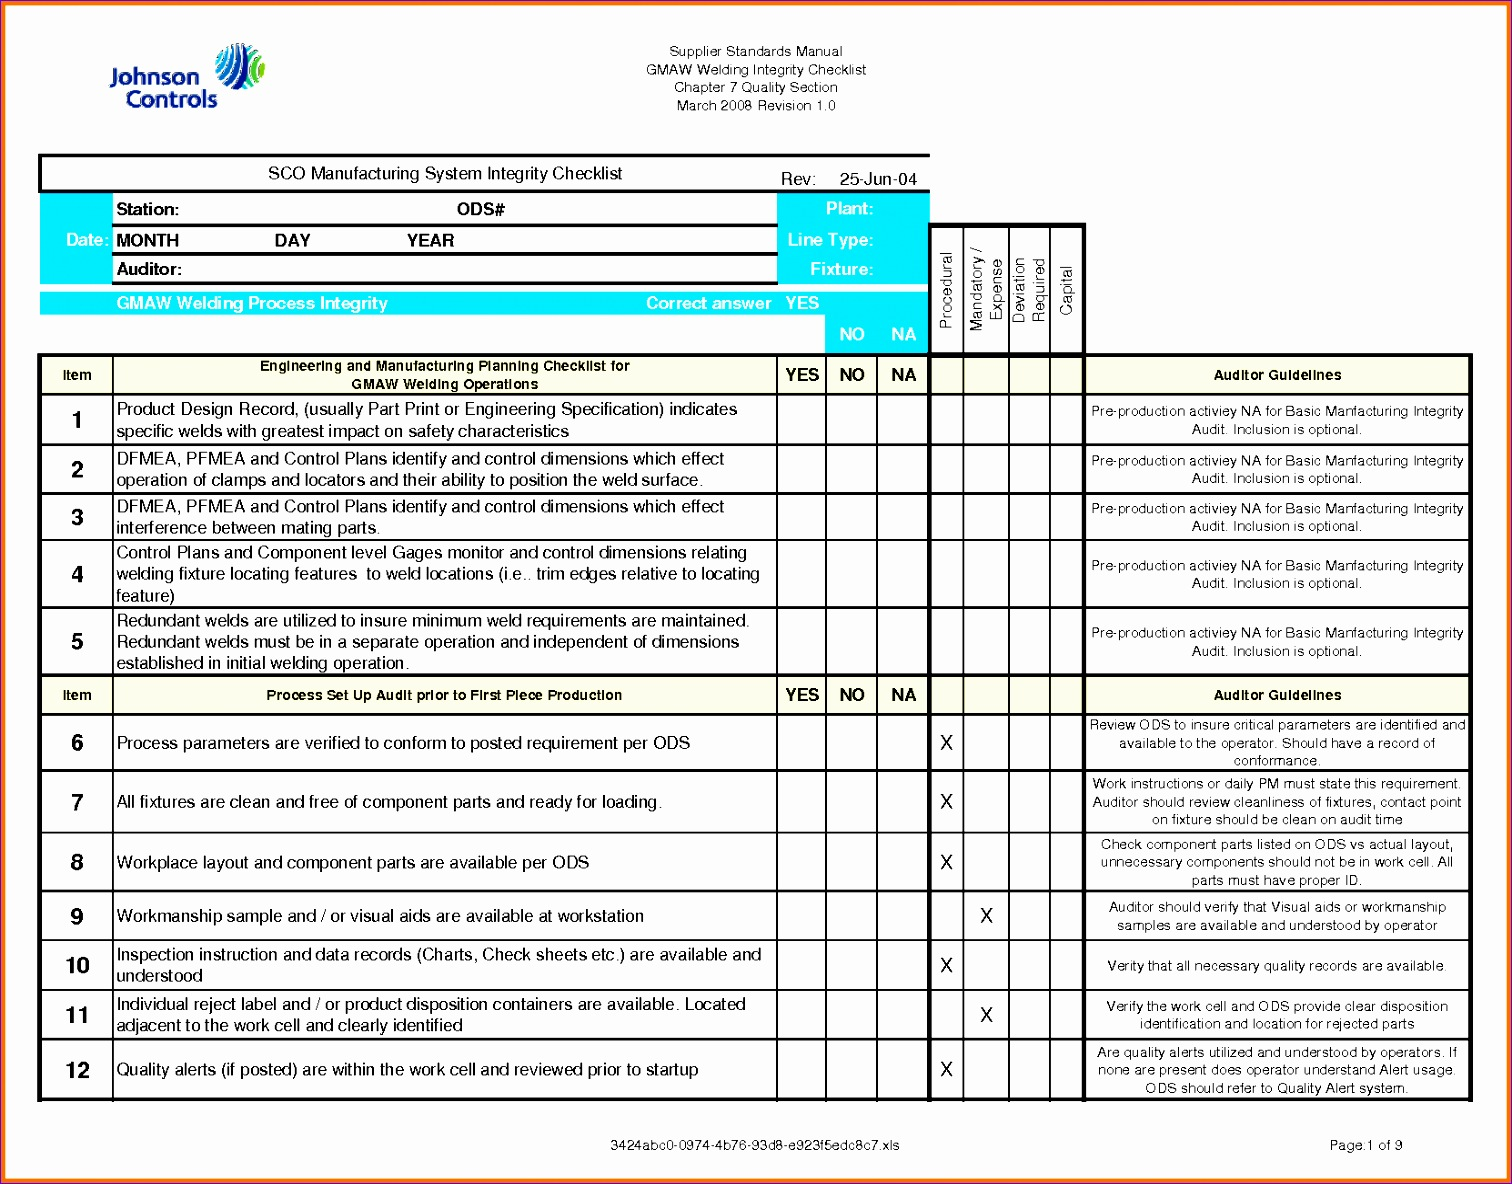 california pizza excel 3 check stub templates – free samples, examples & formats 18 pay stub templates – free samples, examples if you're looking for a good excel pay stub.